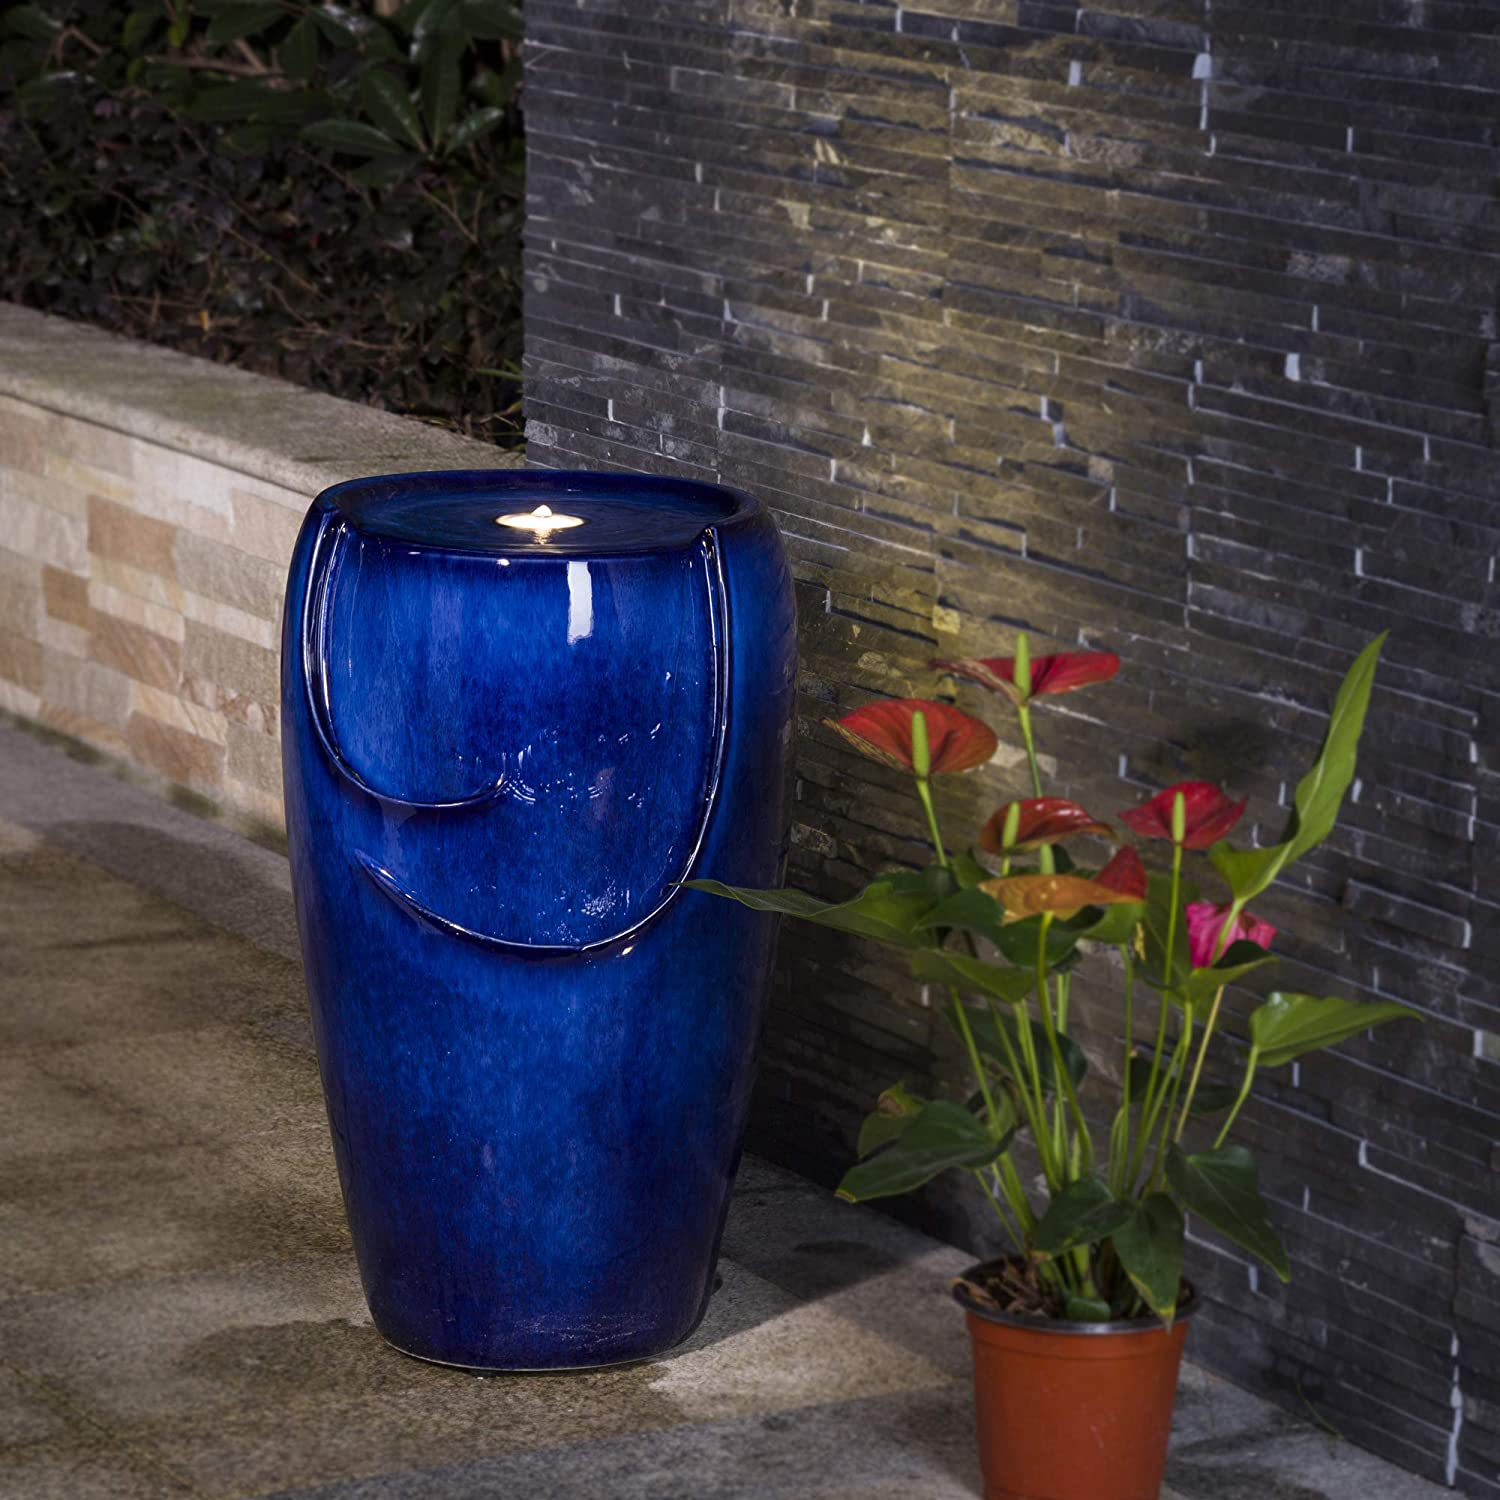 """Glitzhome Blue Ceramic Outdoor Water Fountain with LED Light and Submersible Pump 20.5""""H Decorative Water Fountain for Garden Patio Deck Porch Yard Art Decor"""